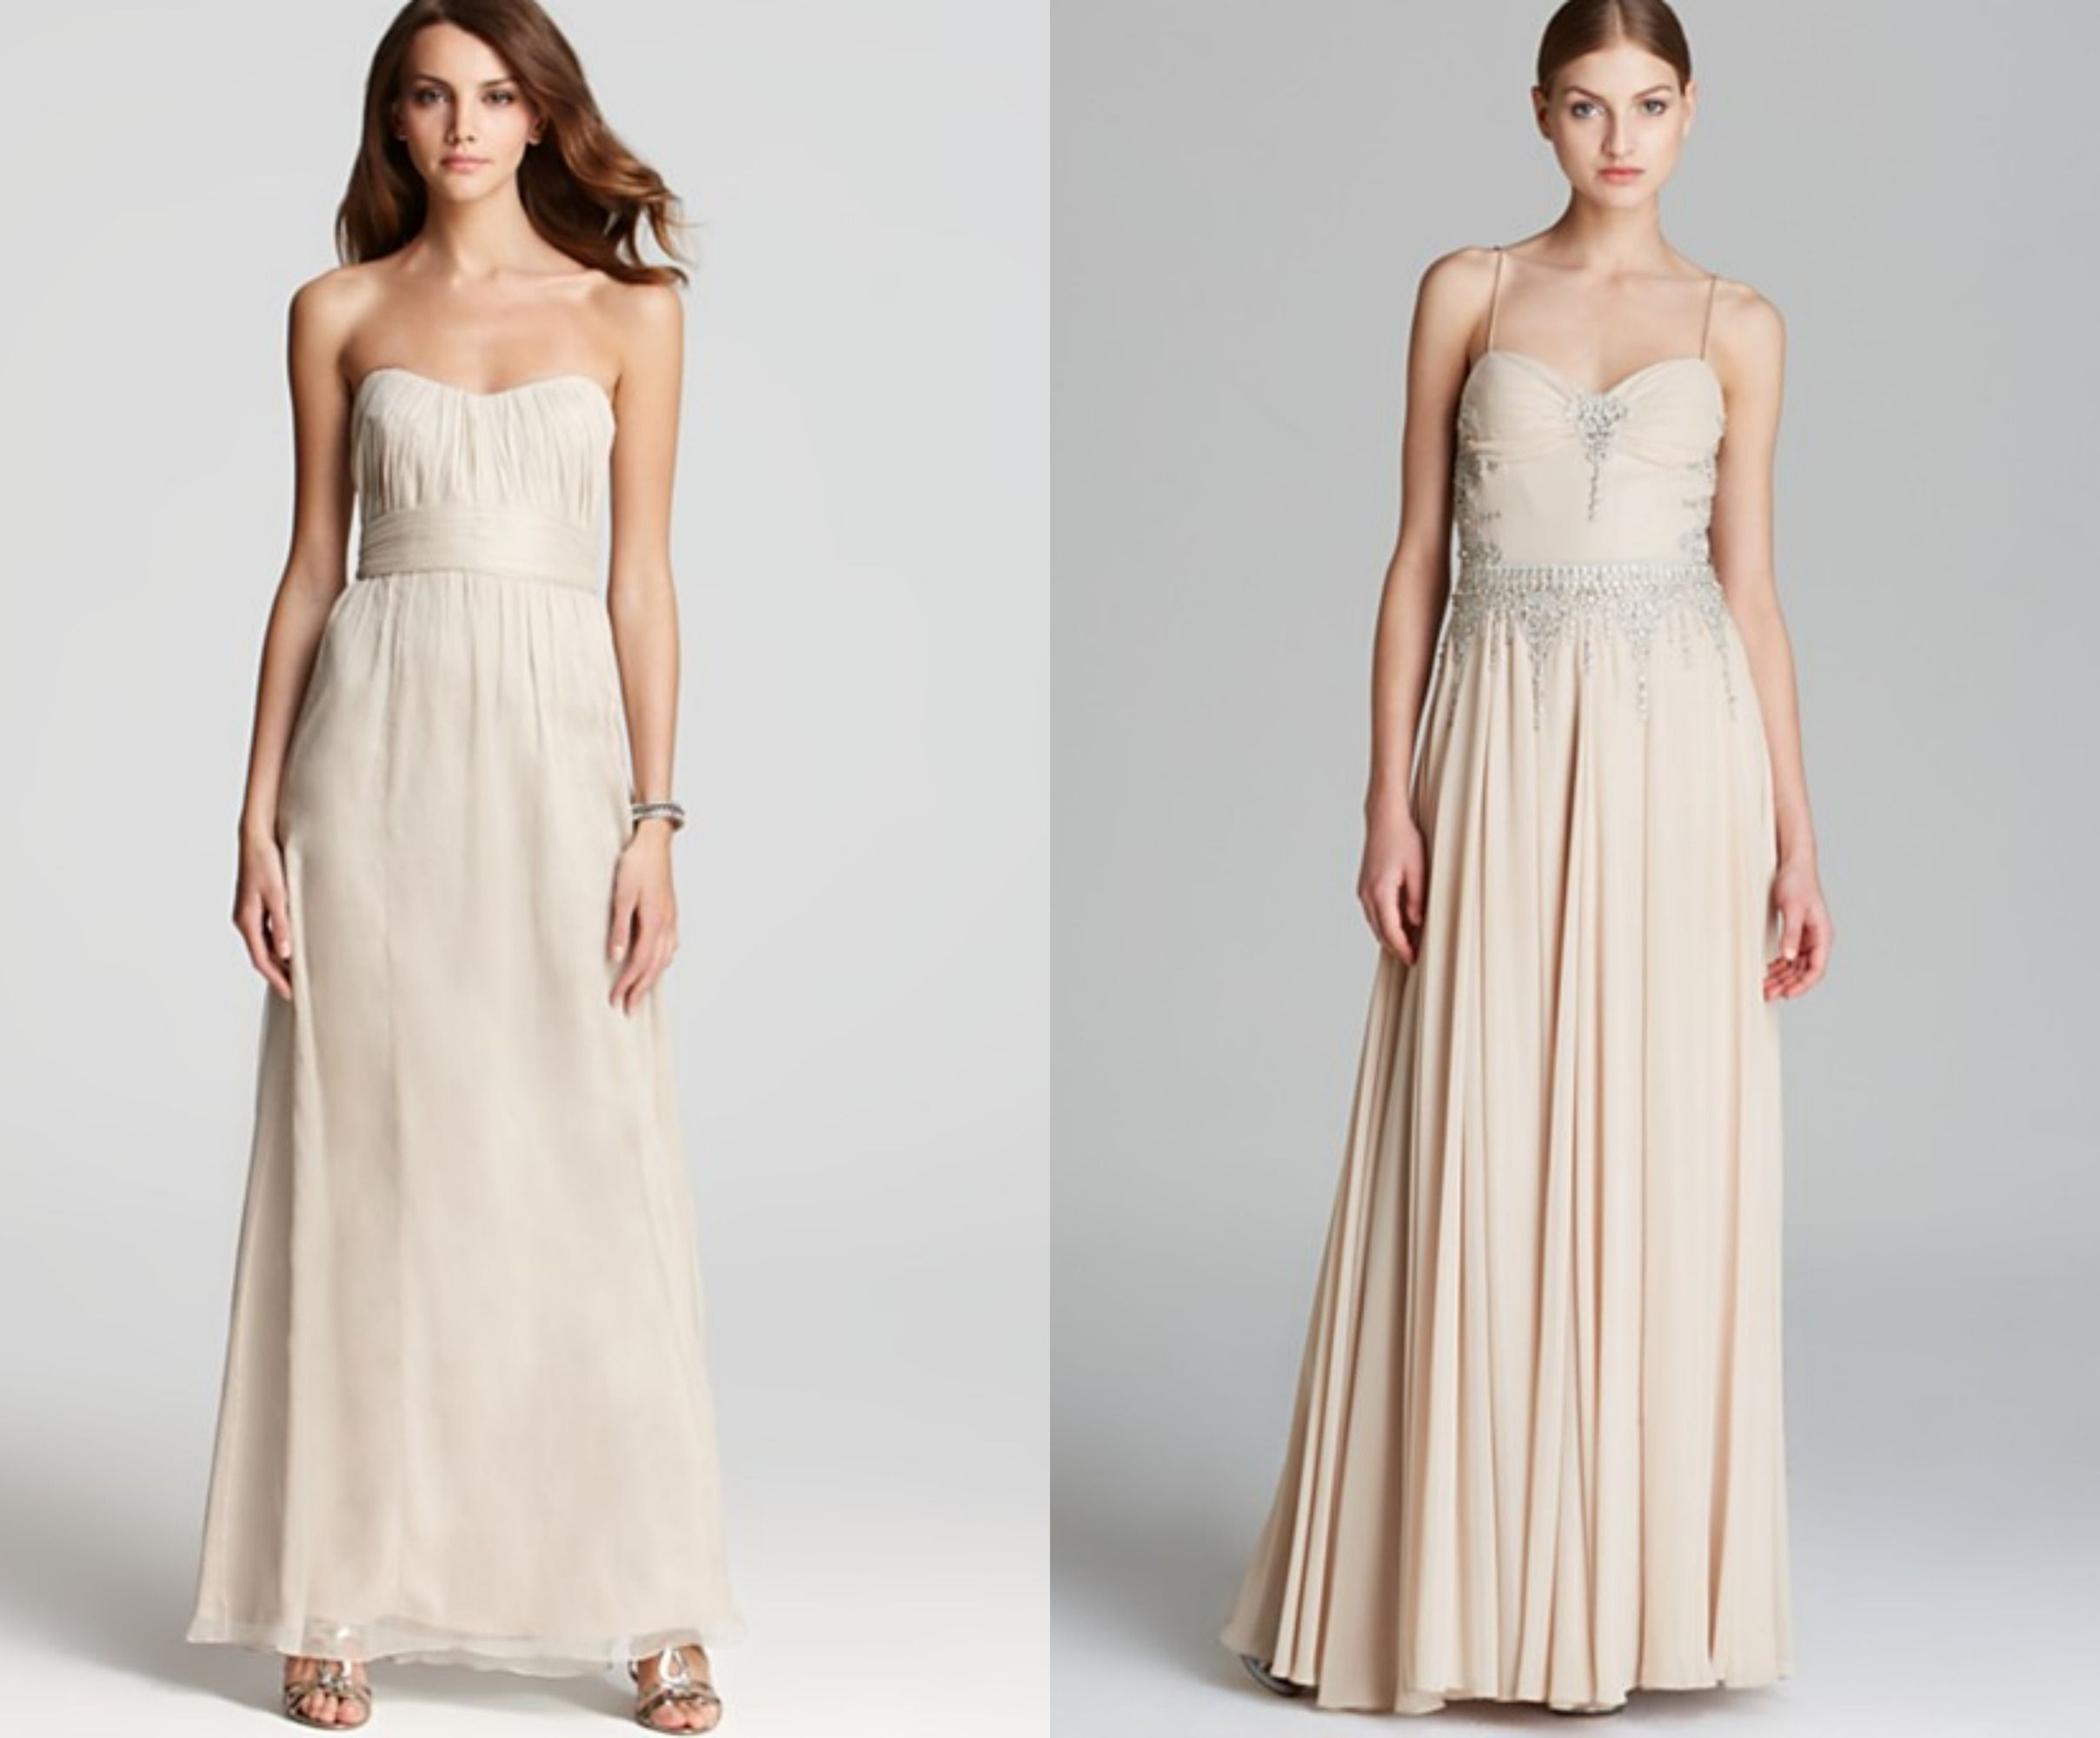 Champagne bridesmaid dresses champagne rustic wedding chic and champagne bridesmaid dresses ombrellifo Gallery